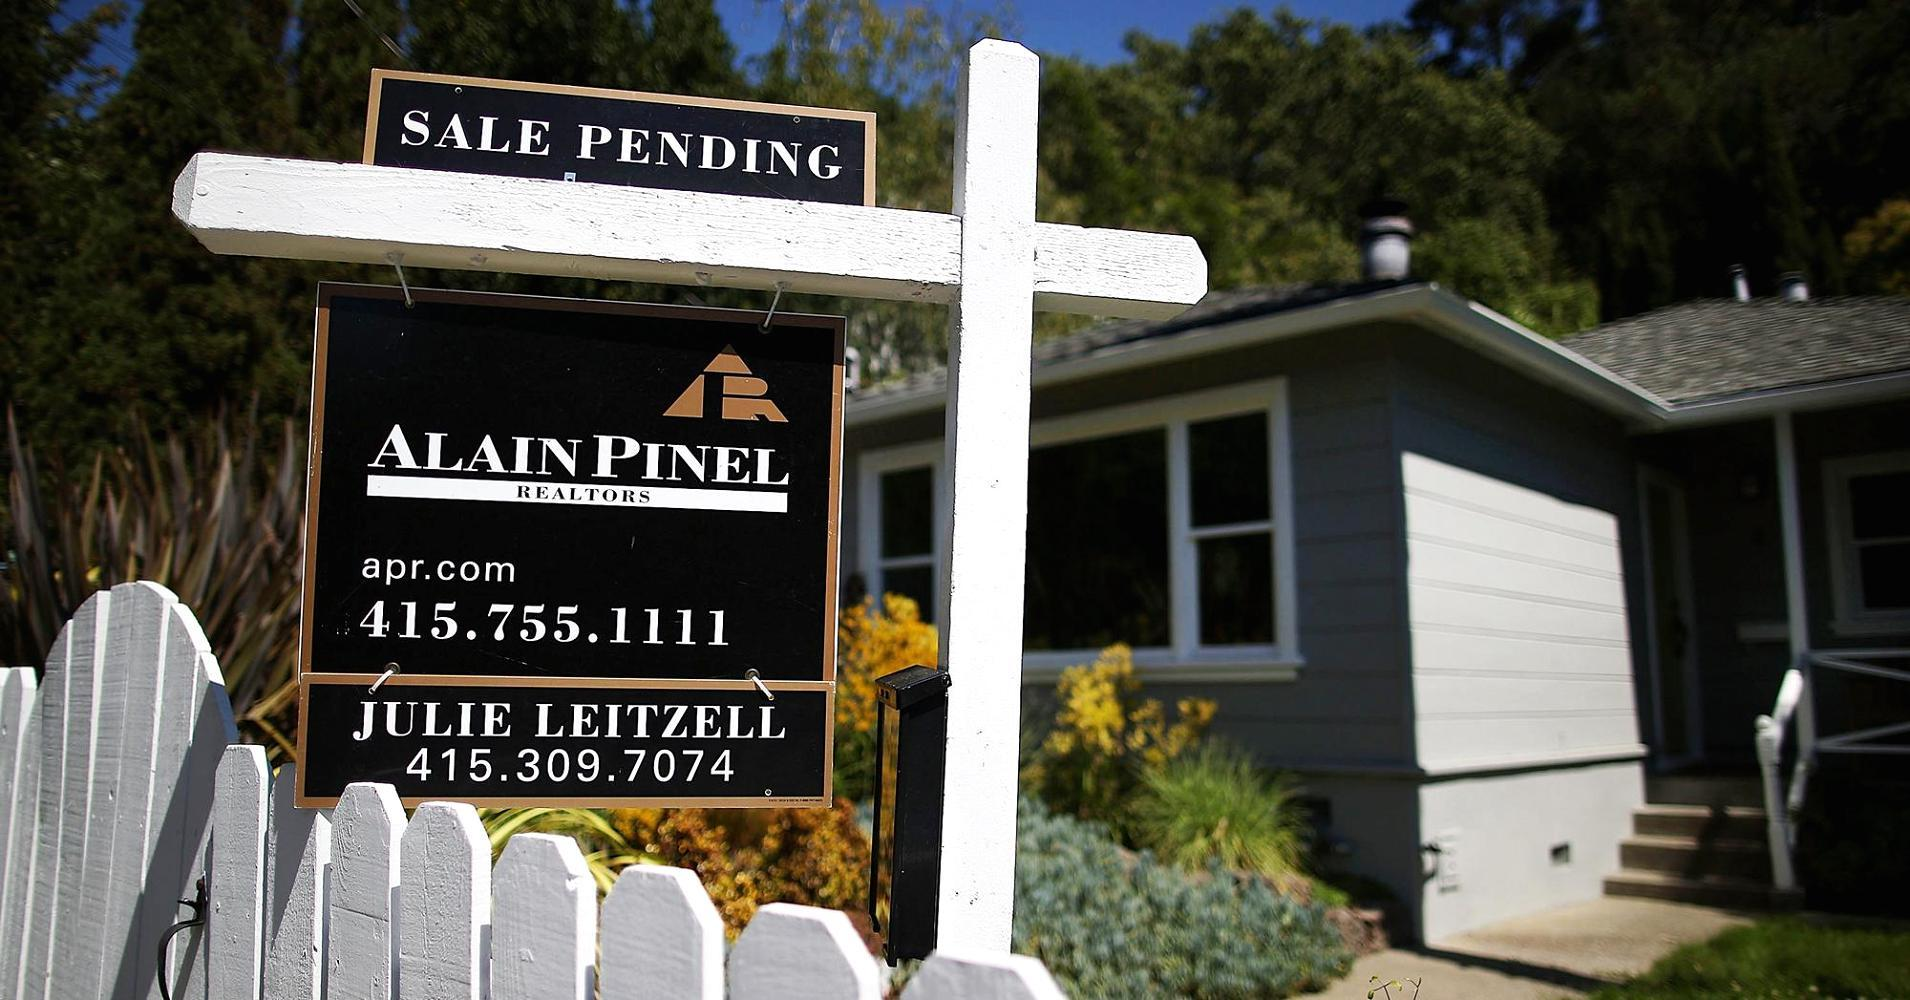 Pending home sales rose just 0.5% in July